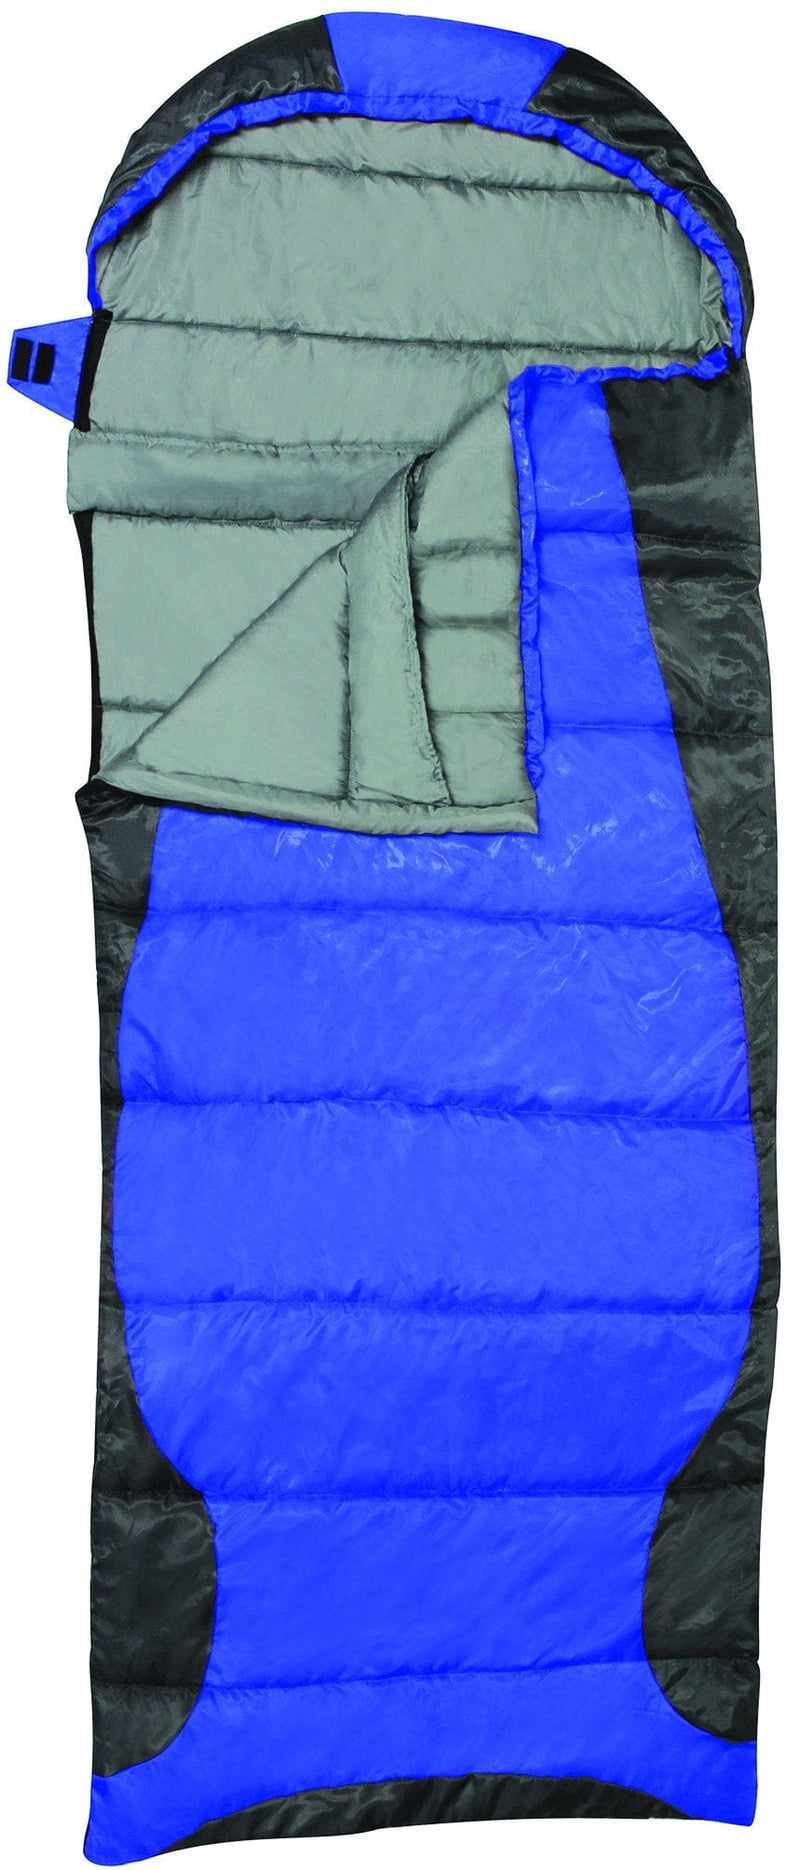 Sleeping bag heat zone RT225 -10C 14F 78+15x34 inch 198+38x87cm rockwater design